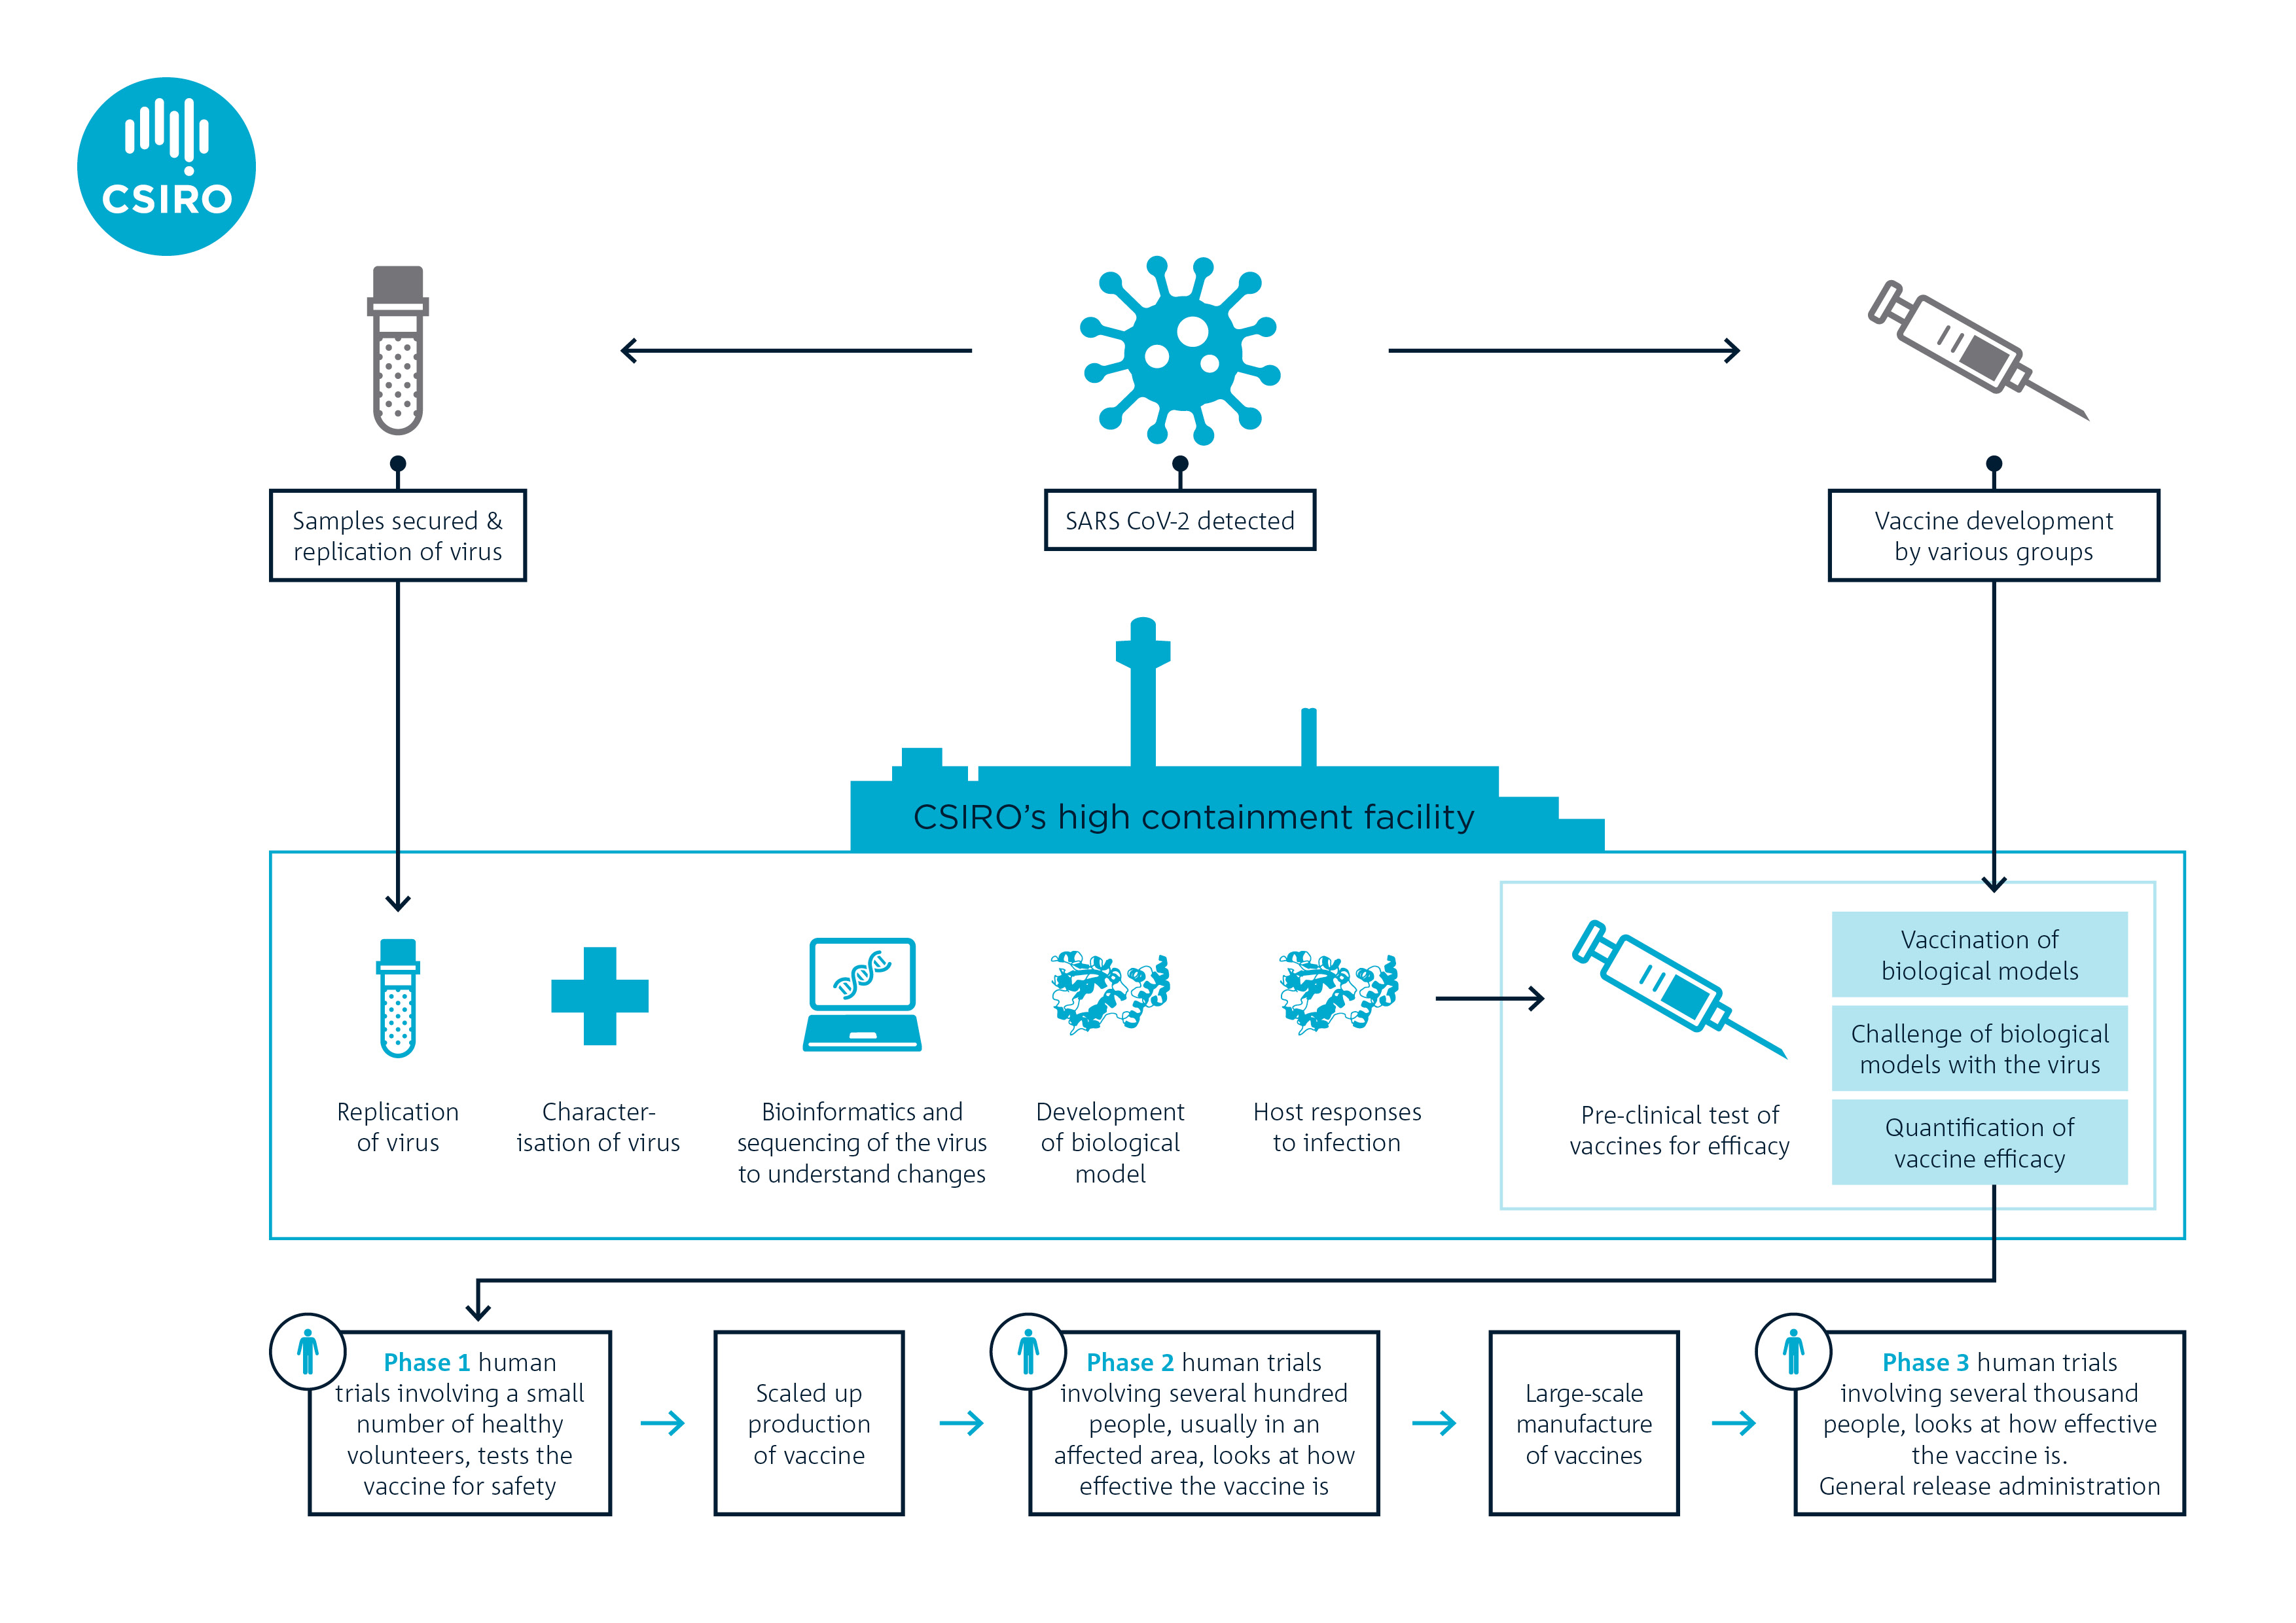 Inforgraphic showing the steps involved in the COVID-19 vaccine development, trials and manufacture.